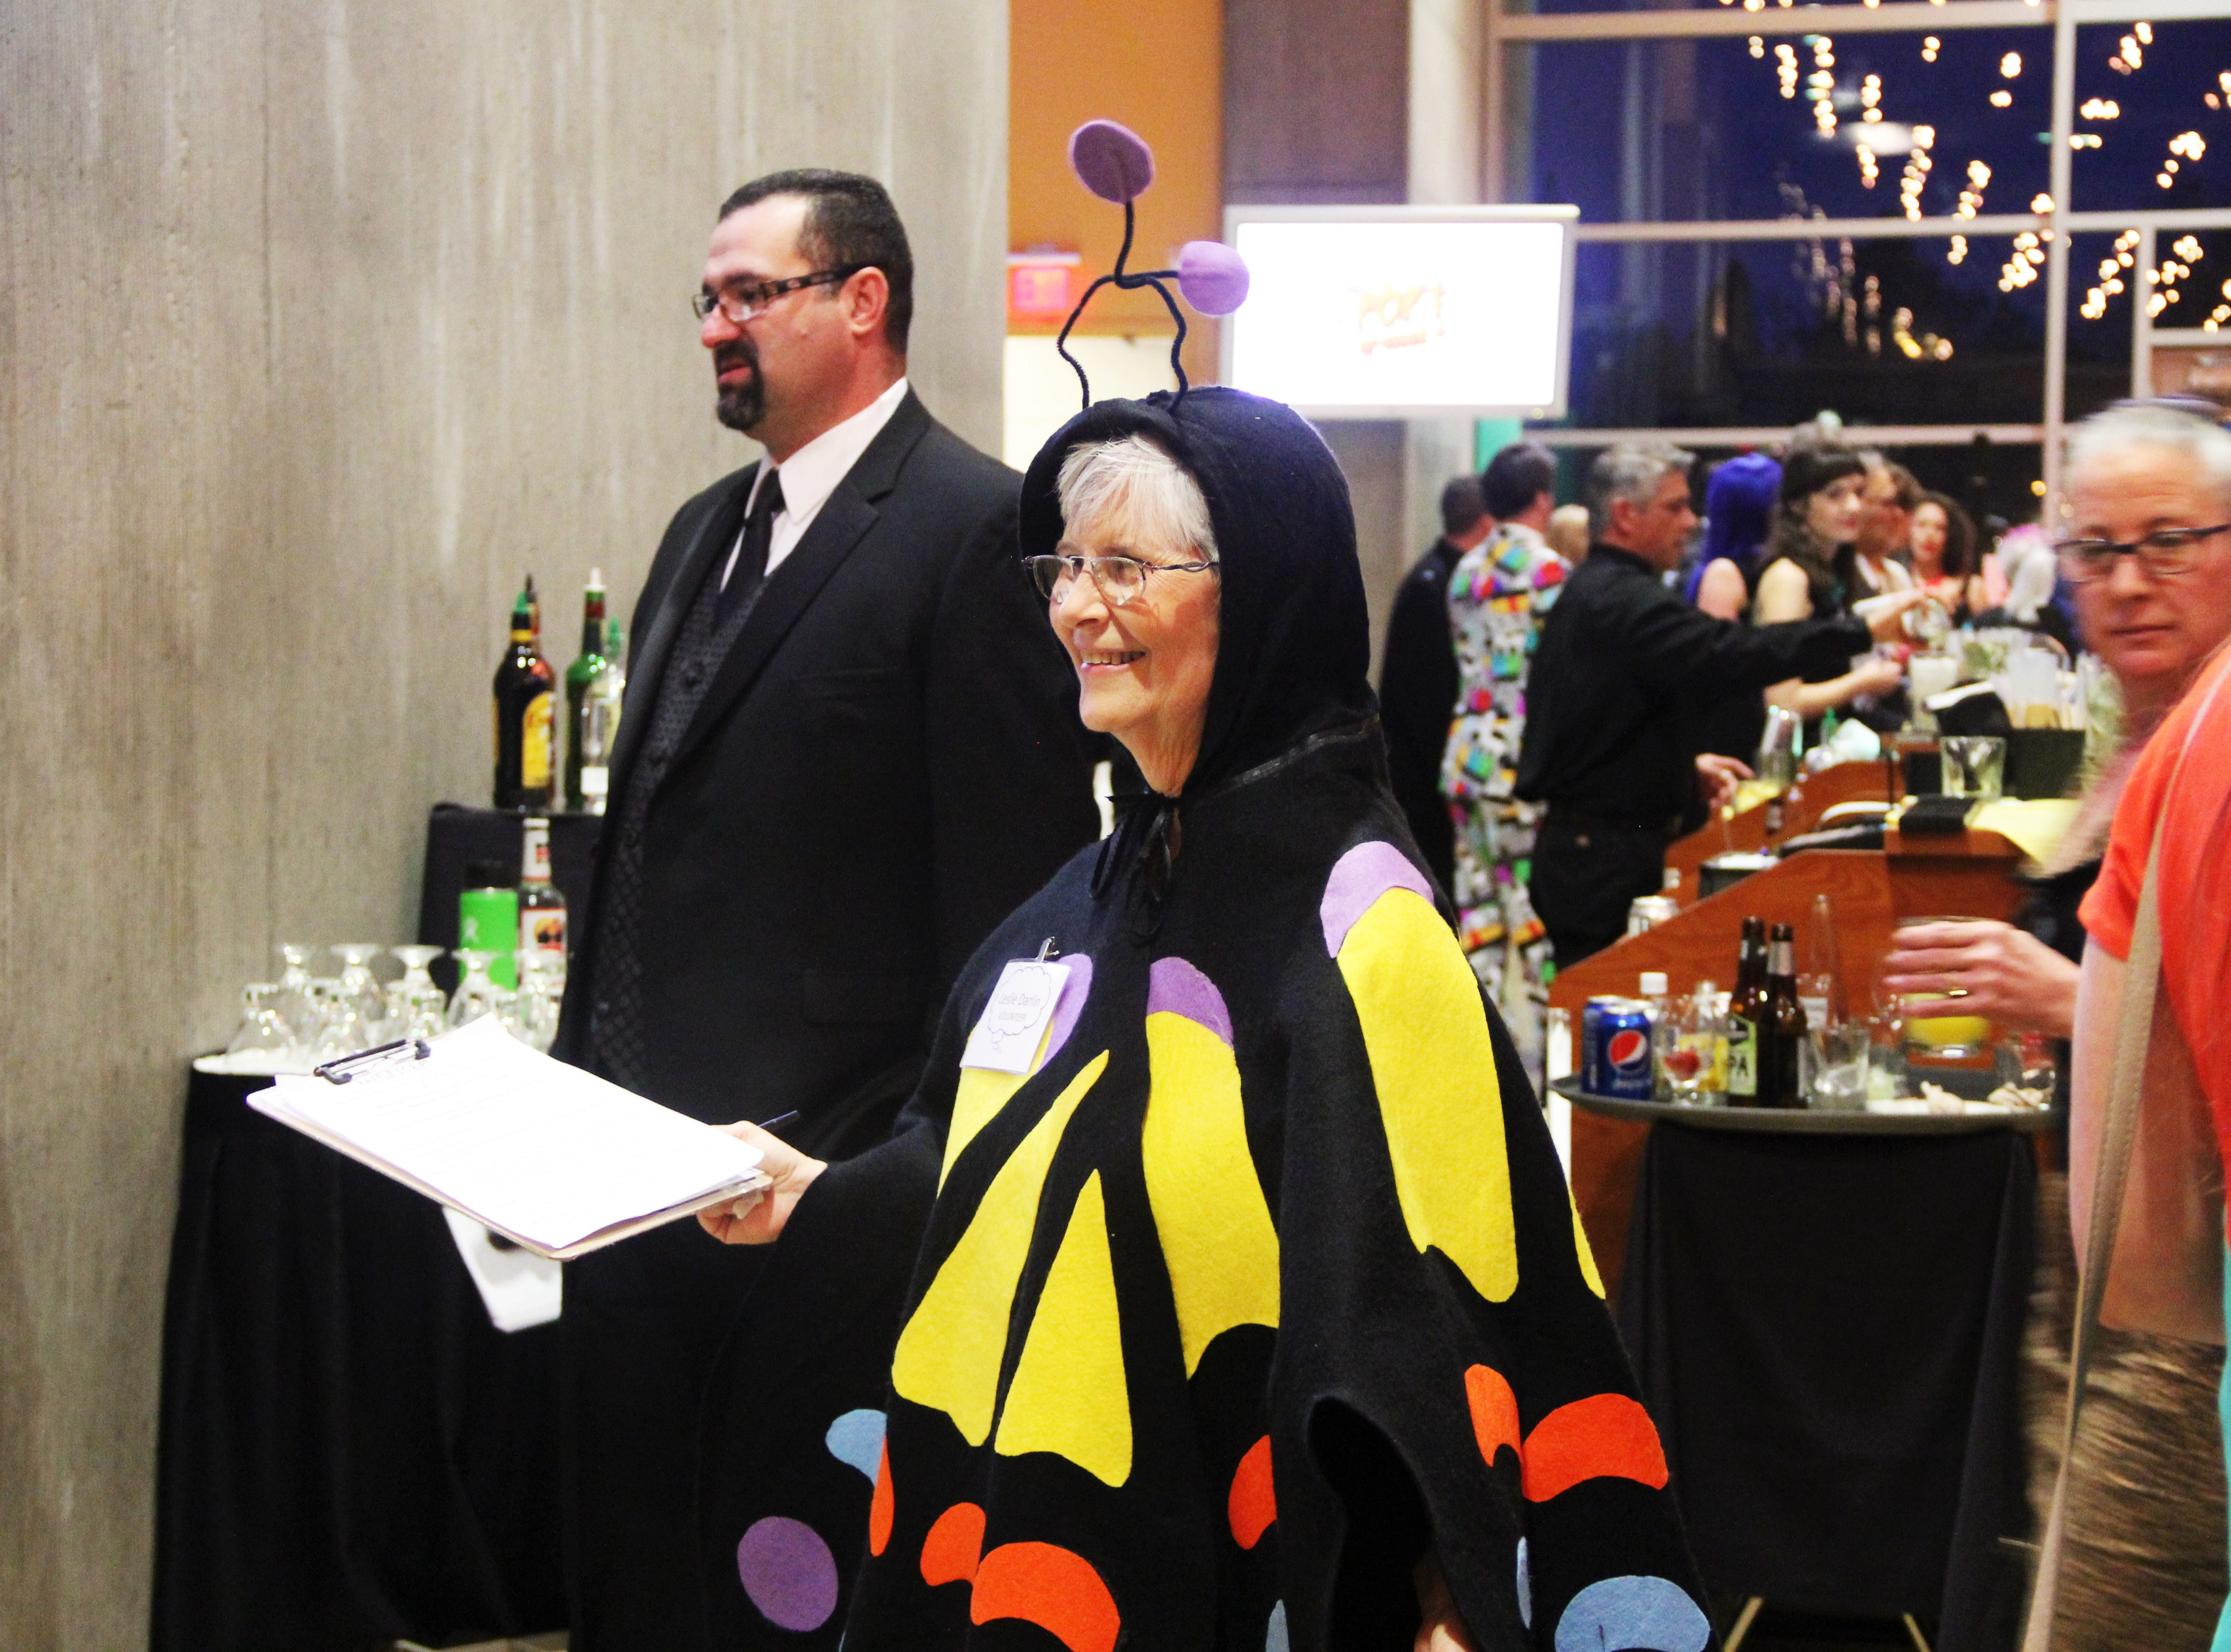 Leslie Darland, of Dallas, wearing a butterfly outfit at the 20th Annual Clay Ball on Saturday, Feb. 23.